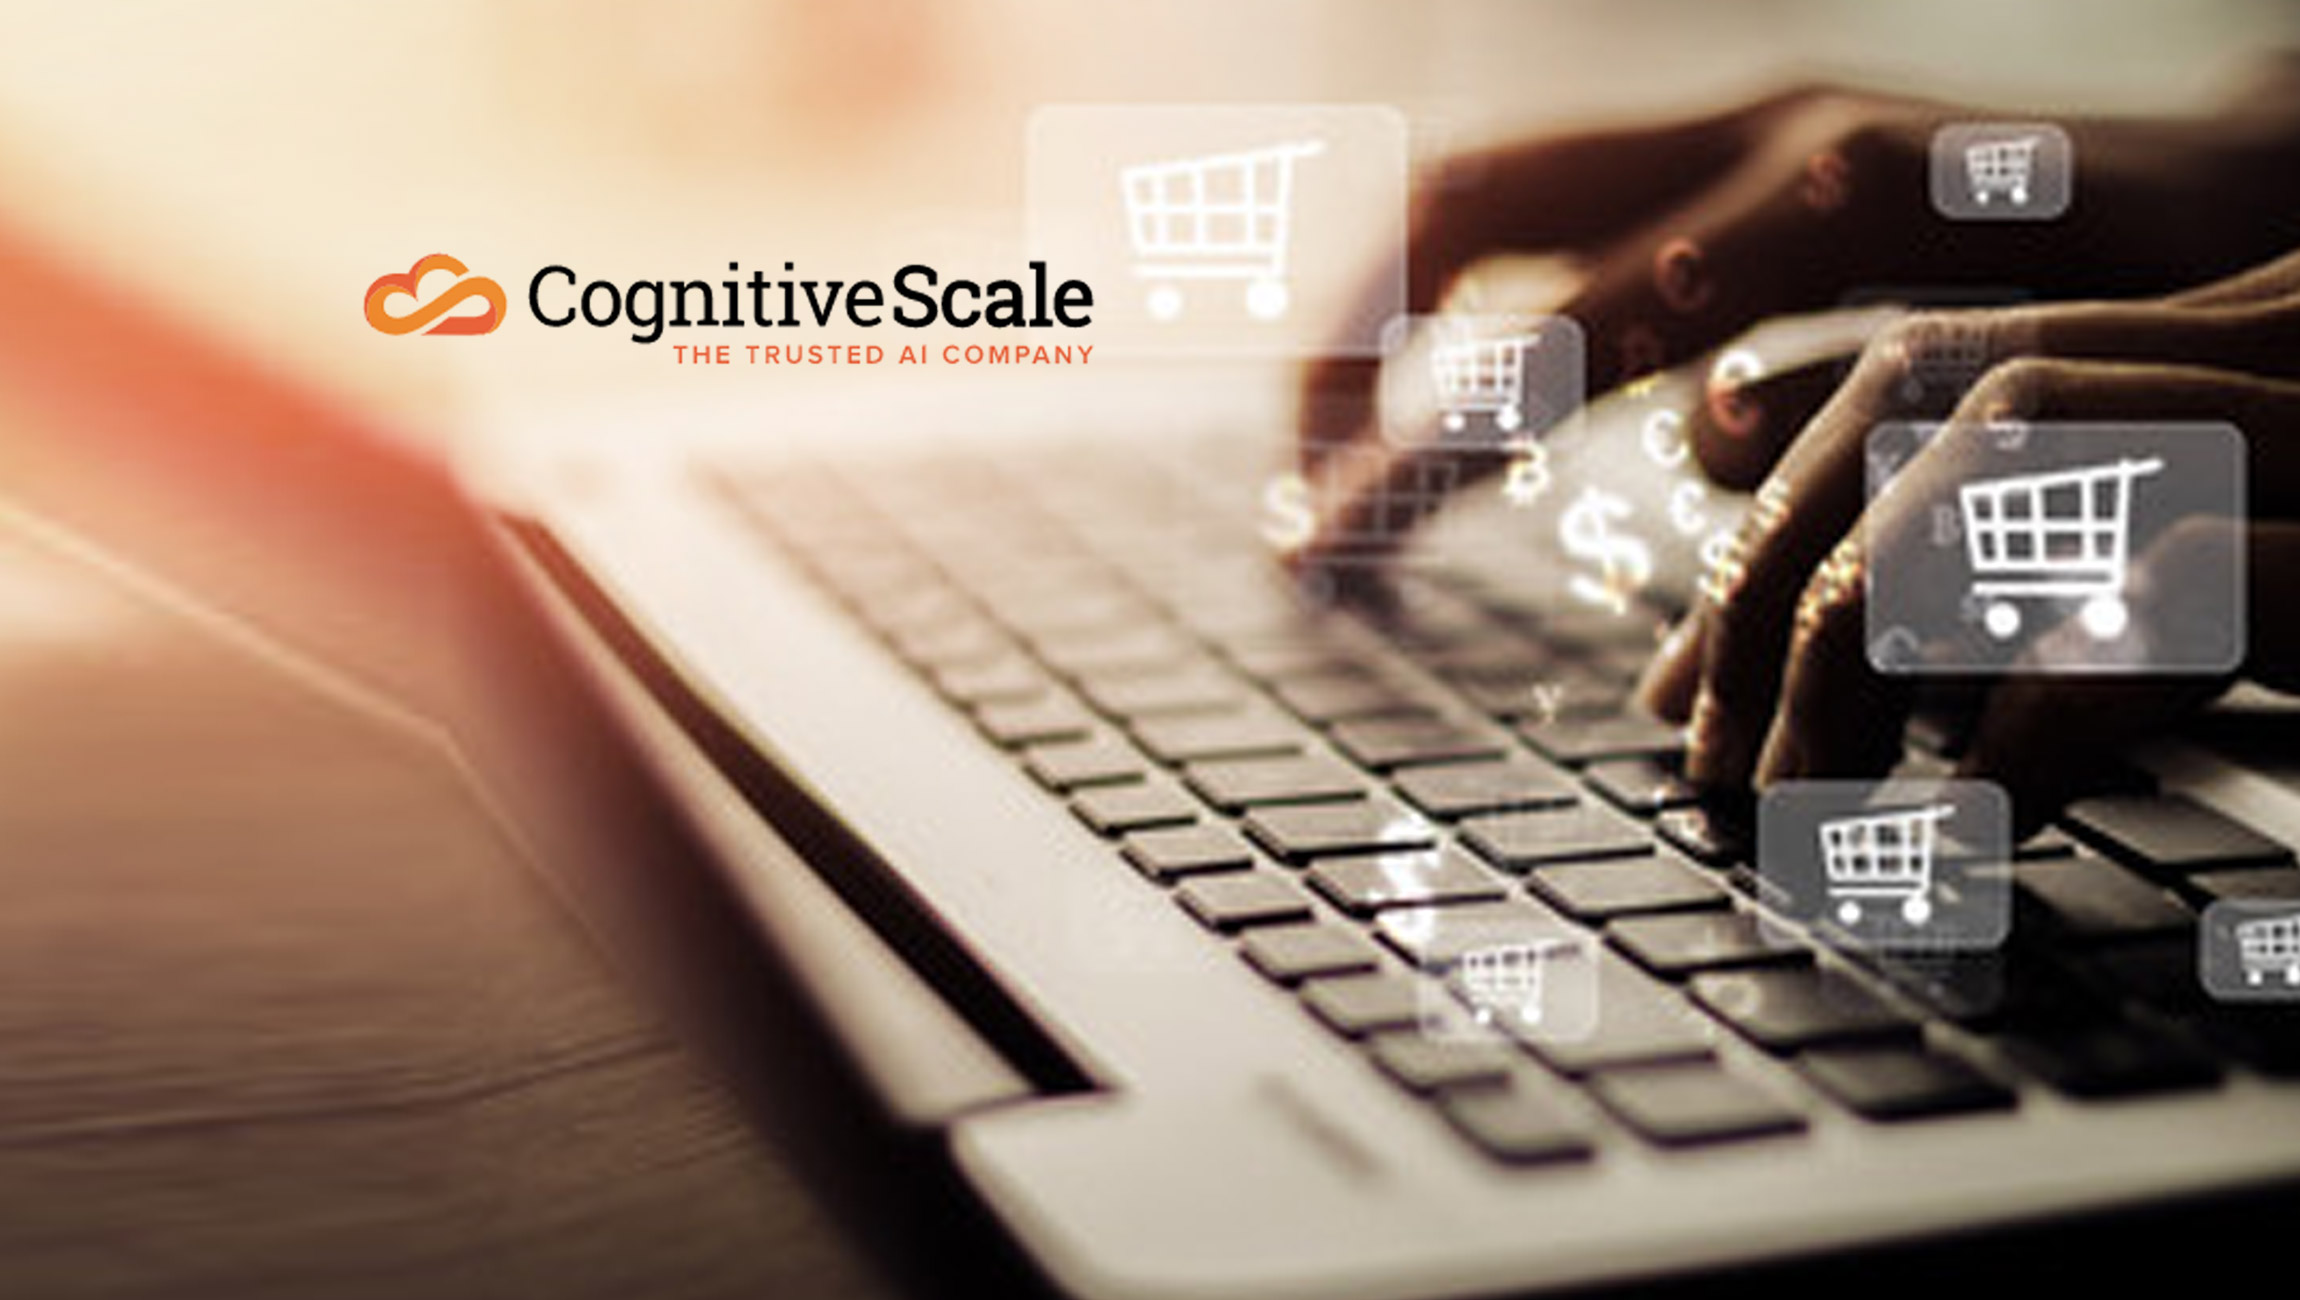 CognitiveScale-and-Ascendum-To-Accelerate-Trusted-AI-Deployments-for-Healthcare_-Fintech-and-eCommerce